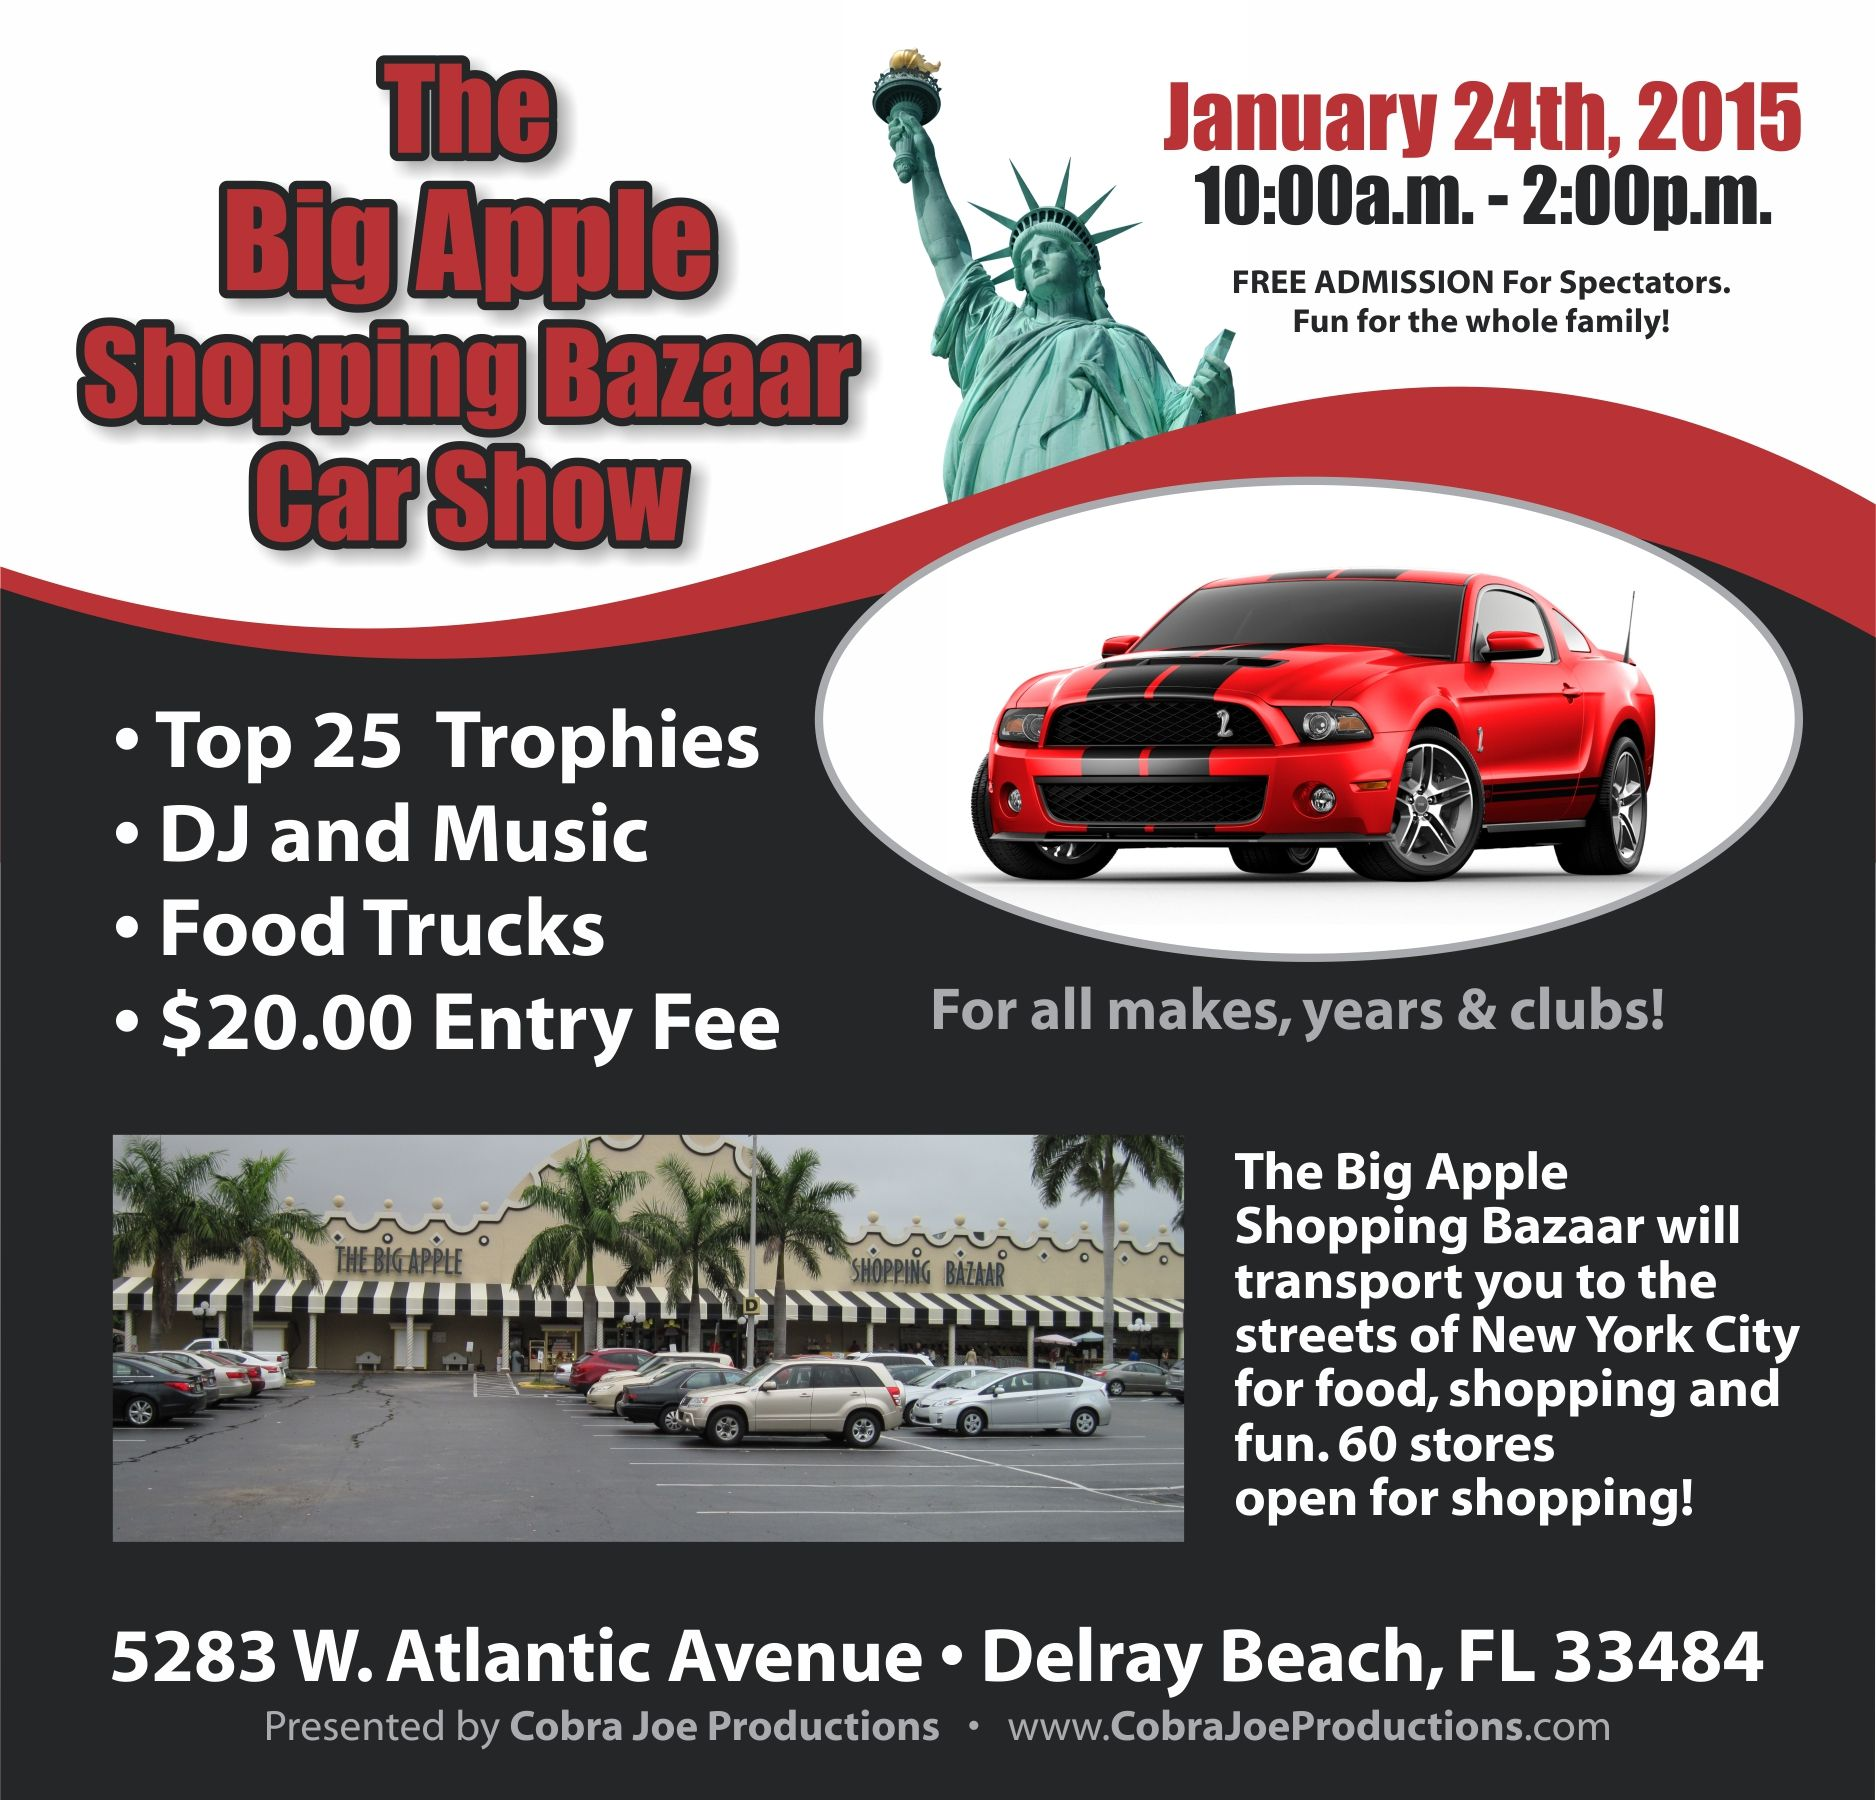 Why Use Auto Broker With Images Big Apple Delray Beach